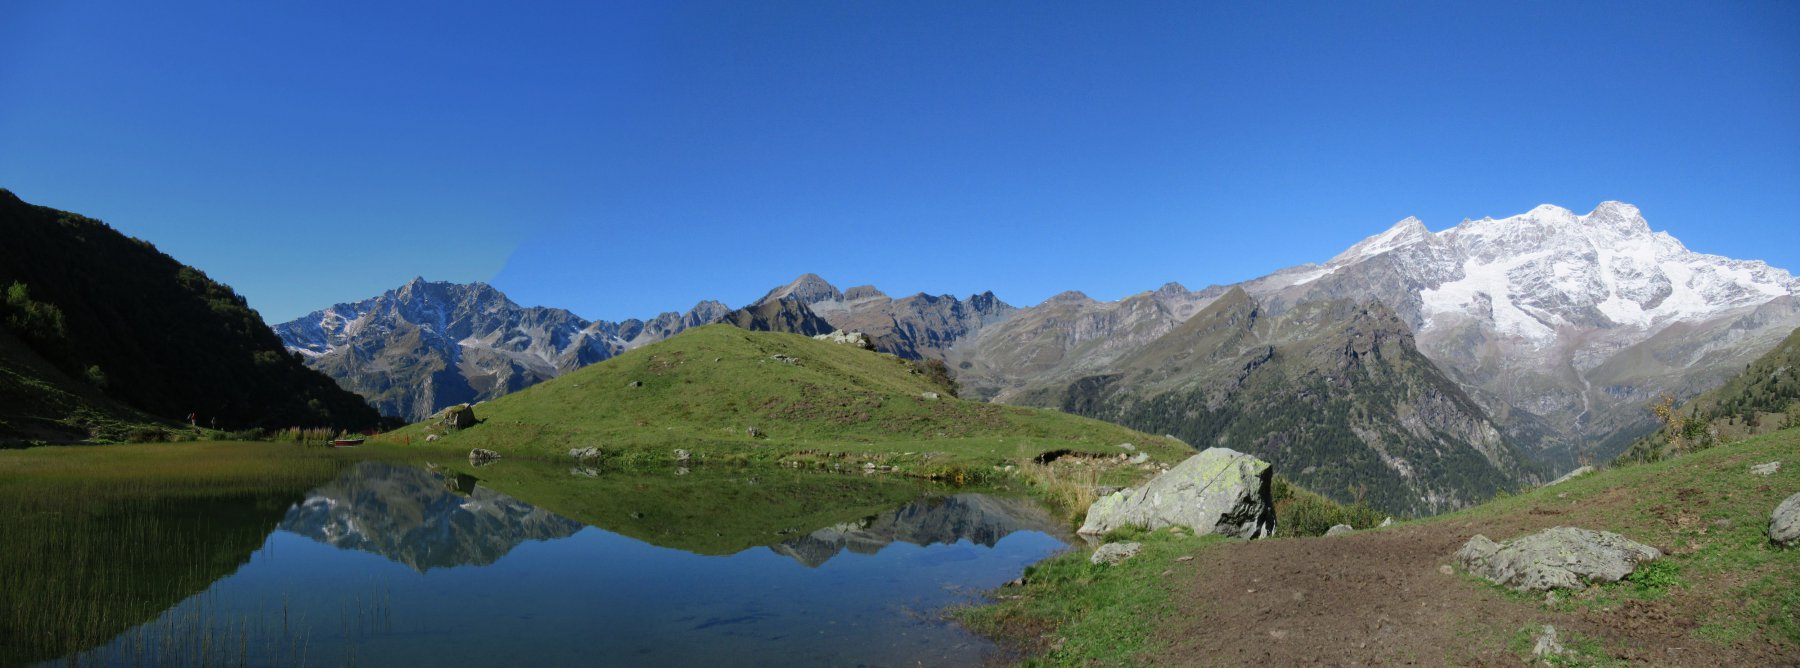 Laghetto all'Alpe Campo